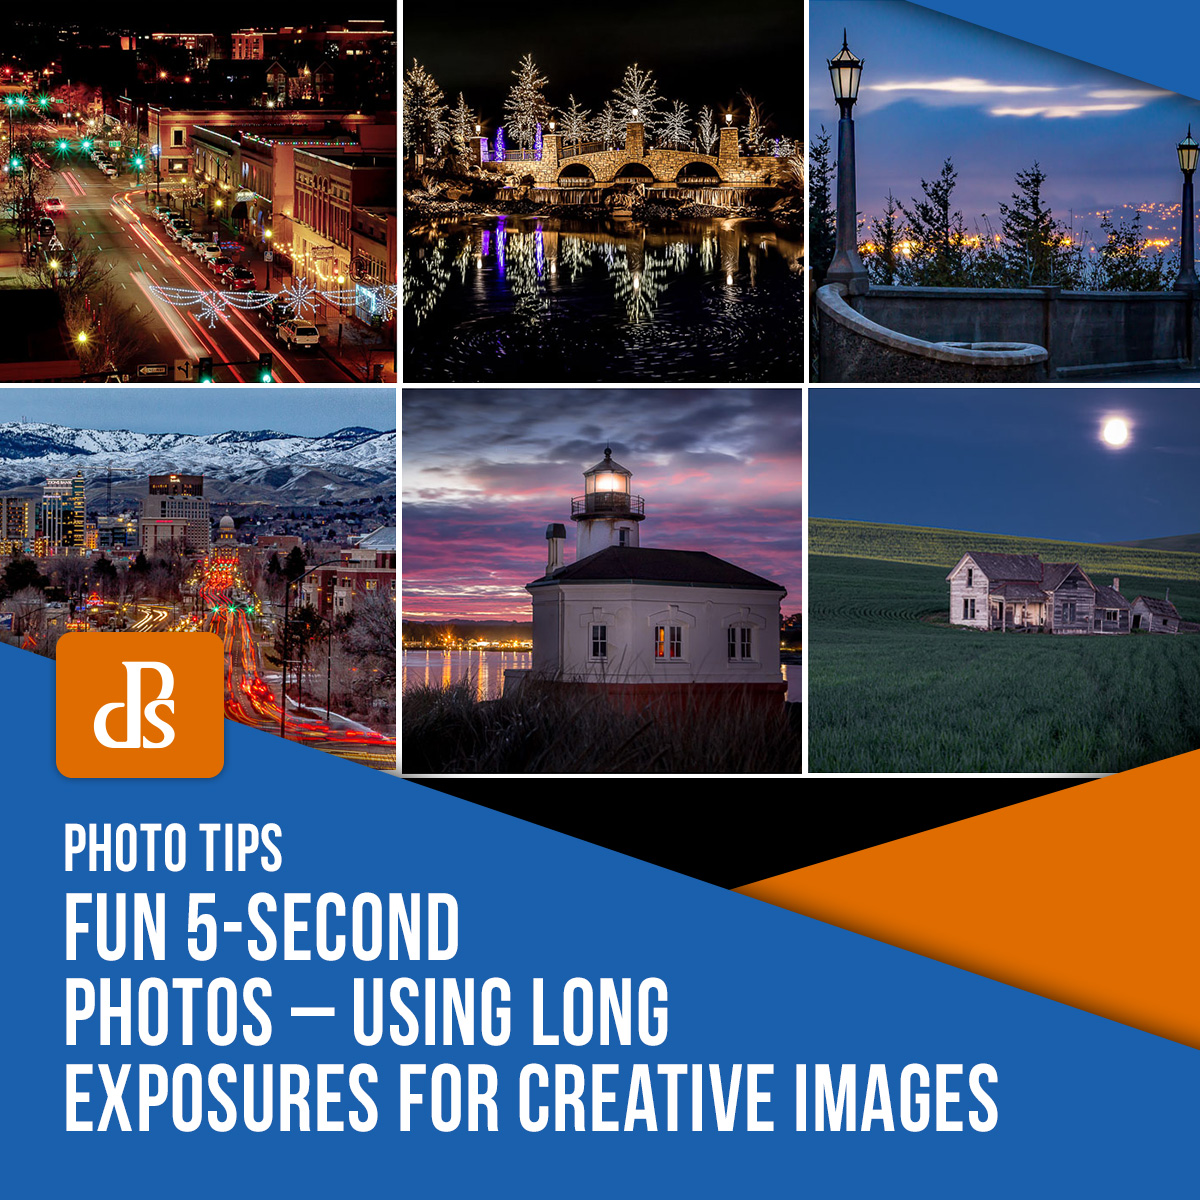 https://i0.wp.com/digital-photography-school.com/wp-content/uploads/2020/04/dps-long-exposures-for-creative-images.jpg?ssl=1